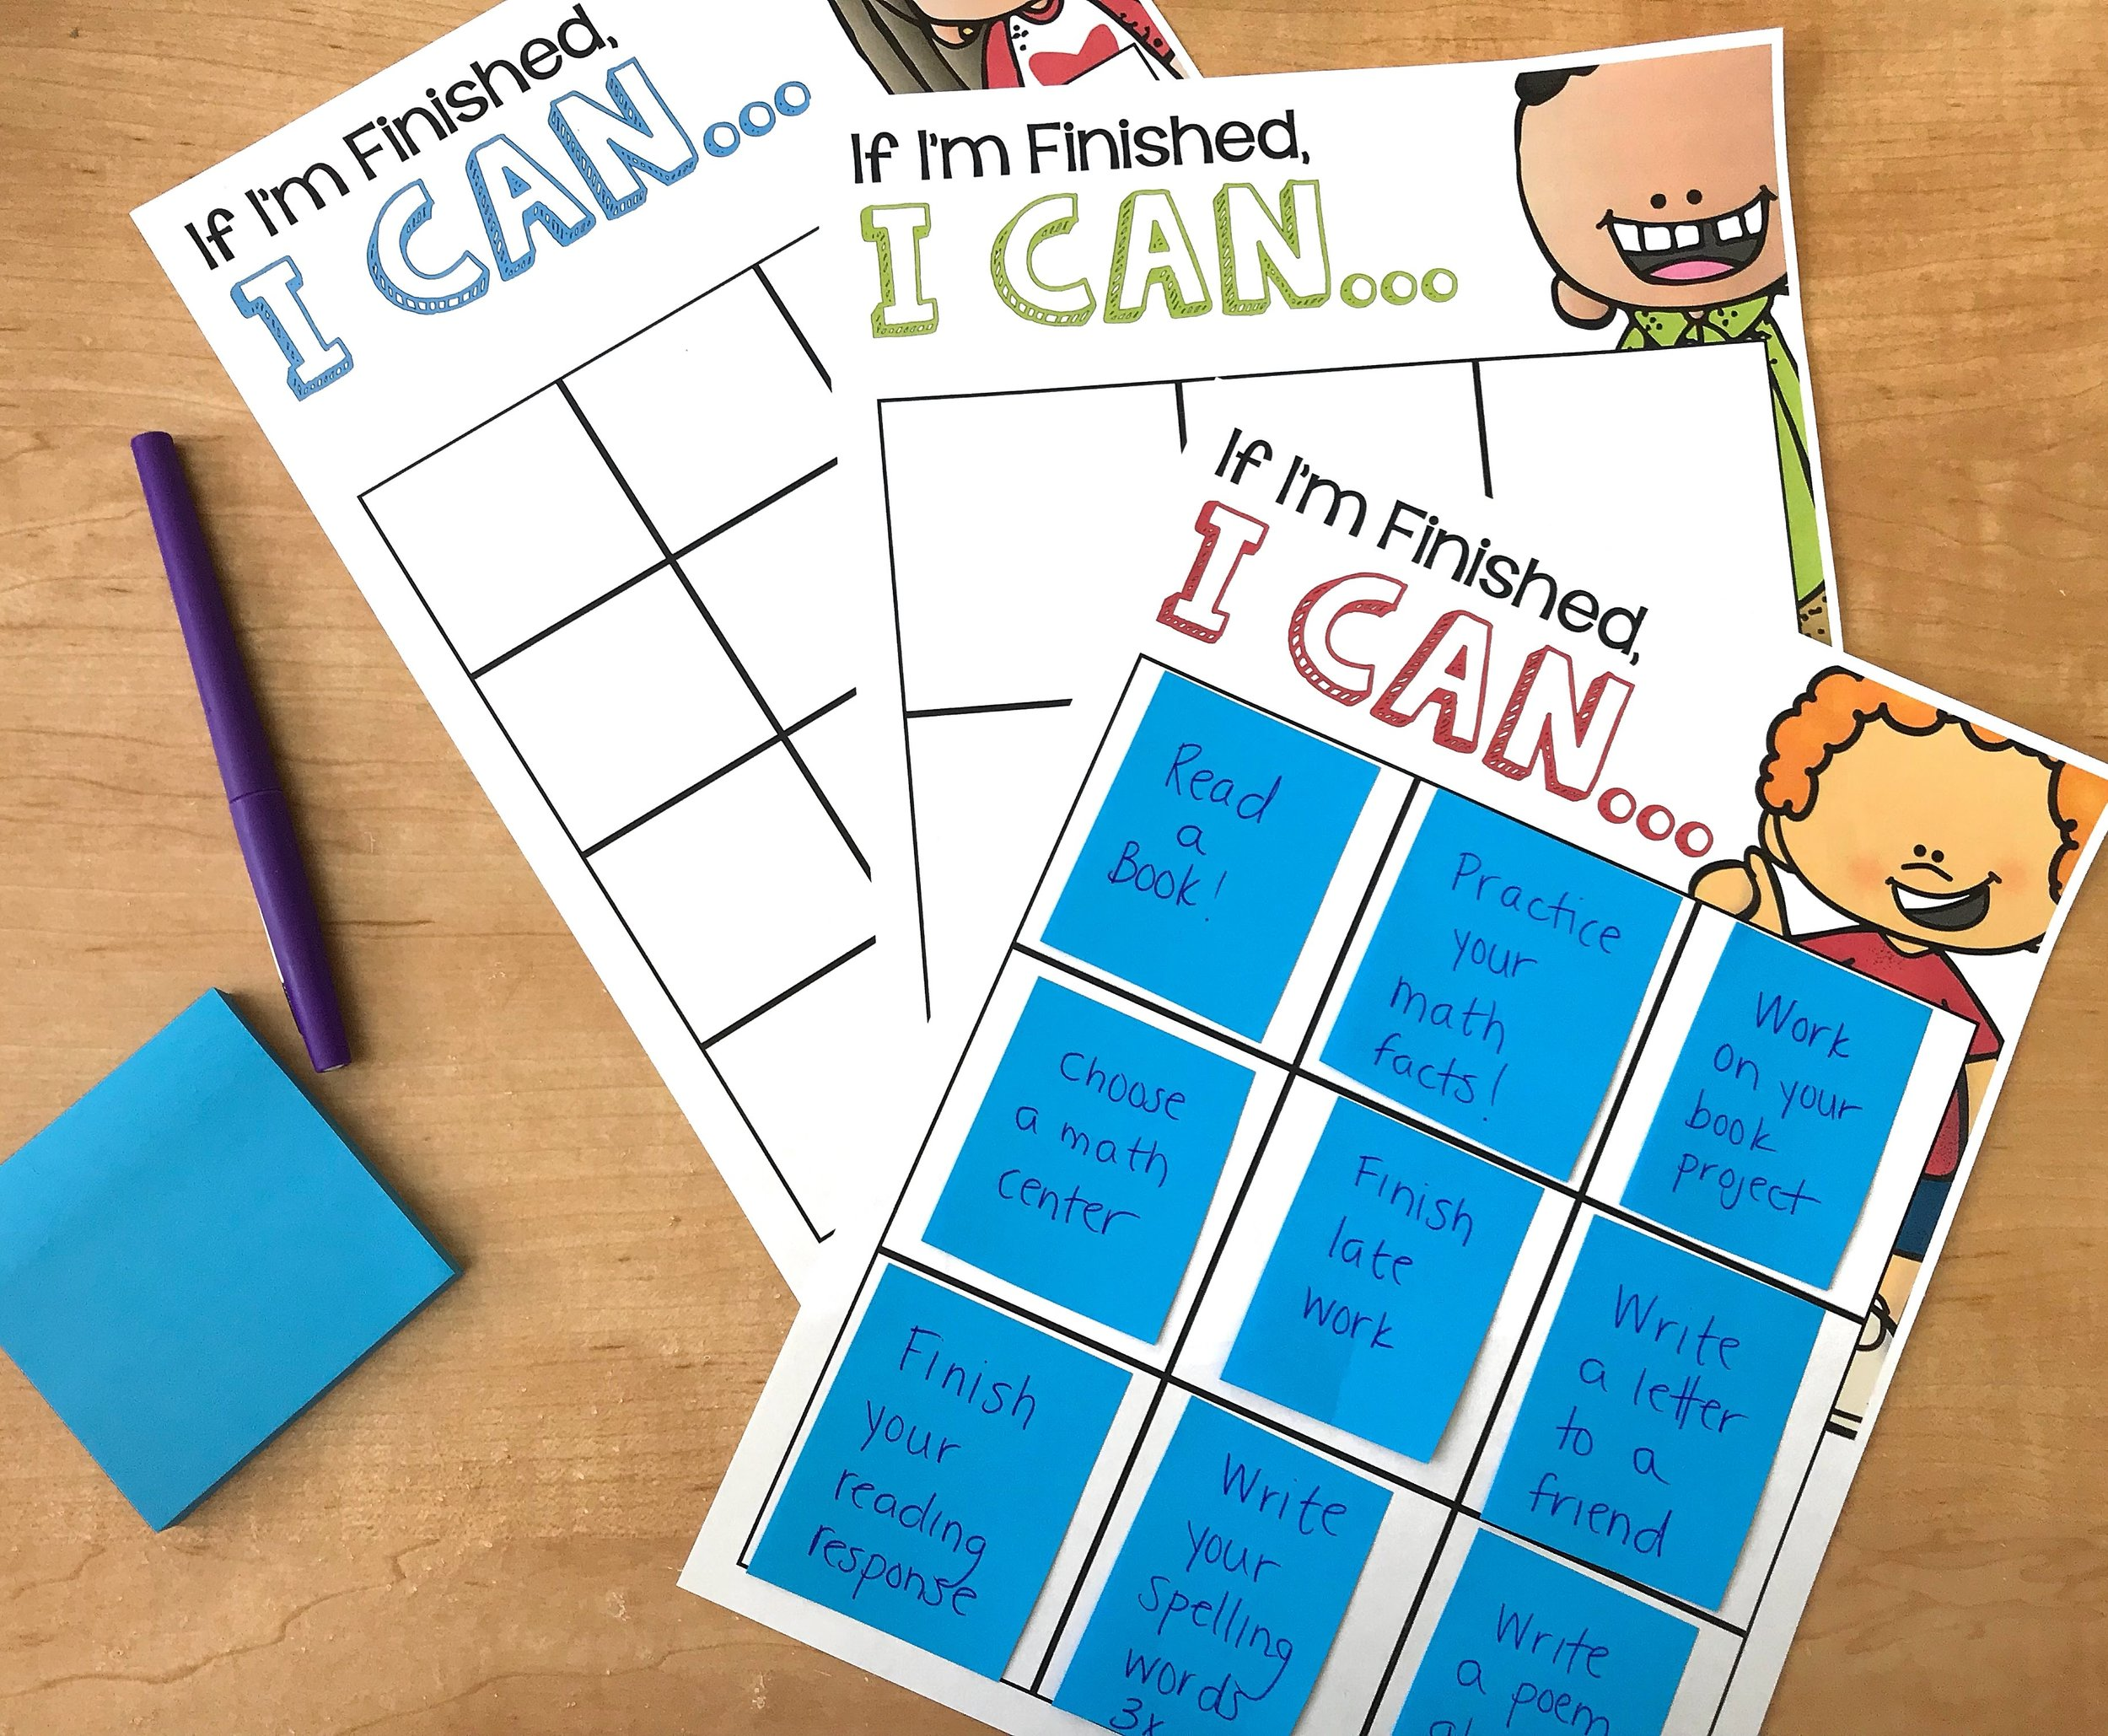 Prepare a few simple activities for students to complete if they finish other assignments early.